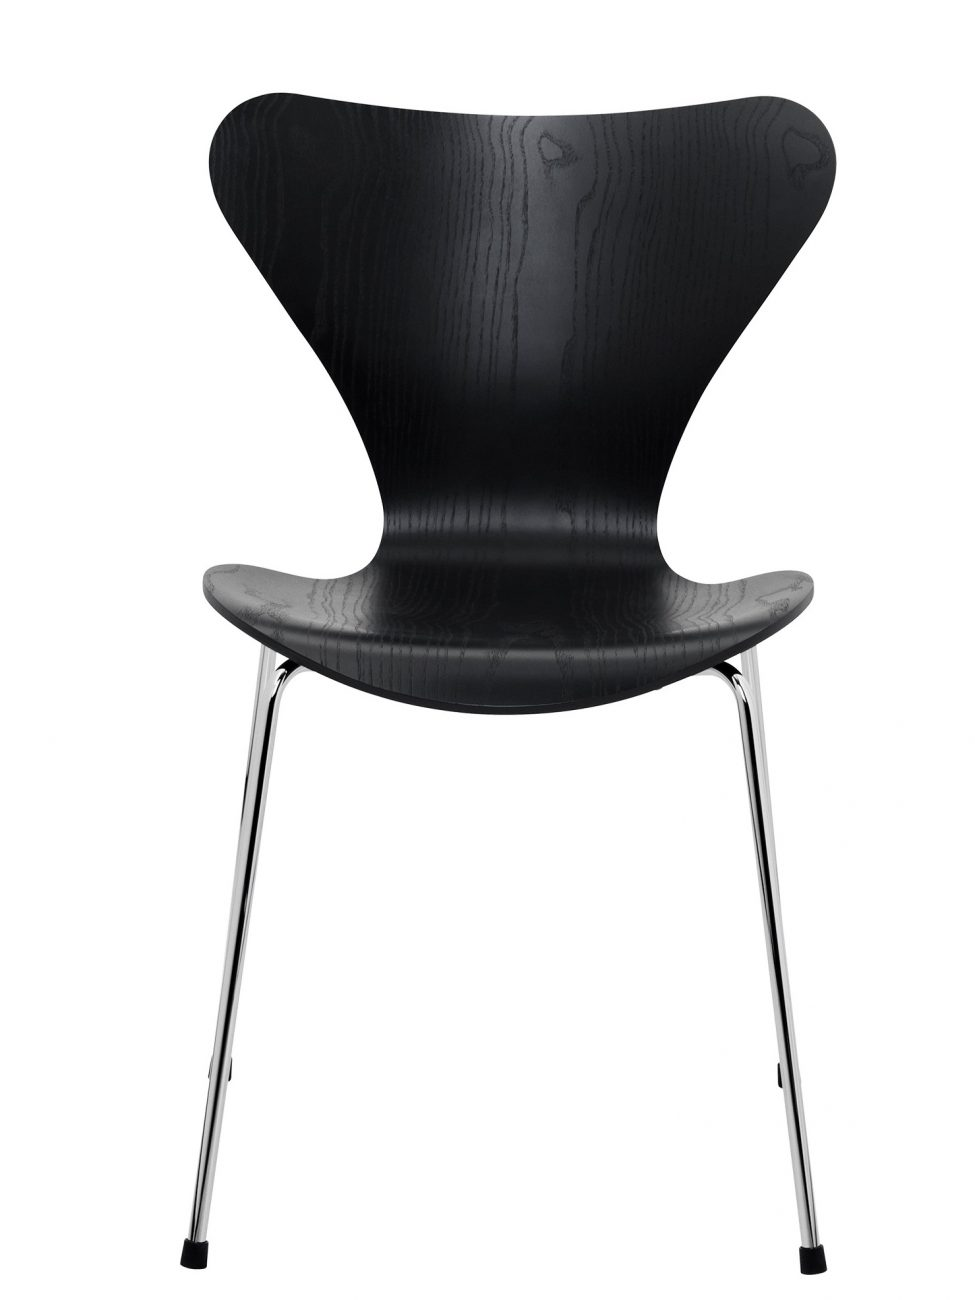 Jacky Chair Black